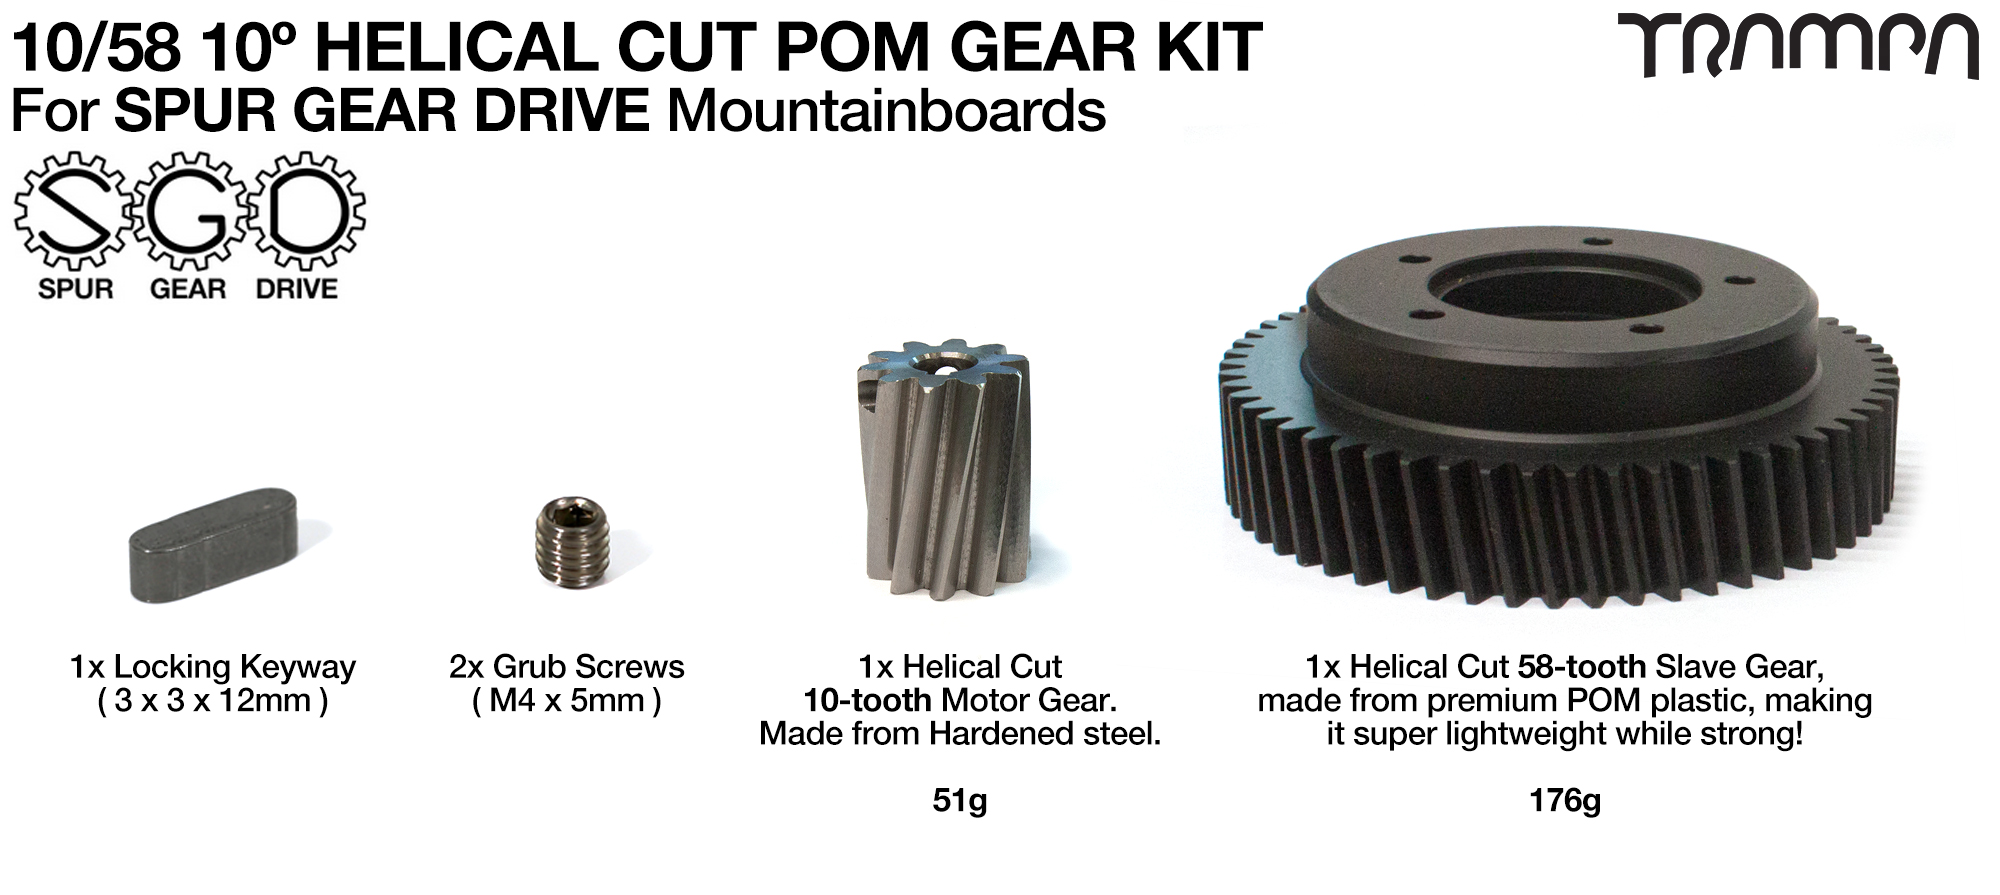 HELICAL CUT Gears Please